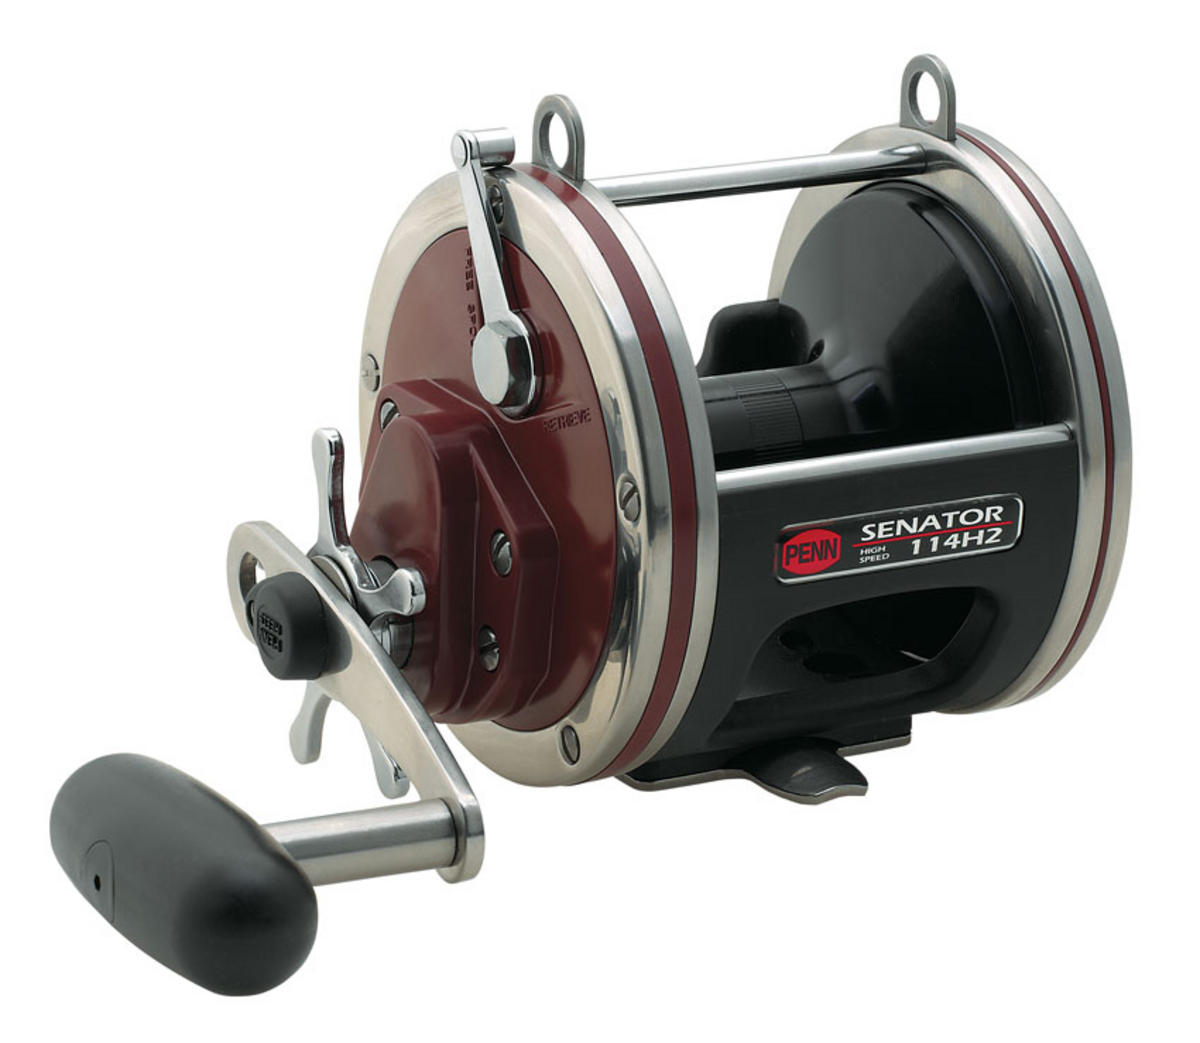 Penn Special Senator 114H2 6/0 Big Game Sea Fishing Multiplier Reel